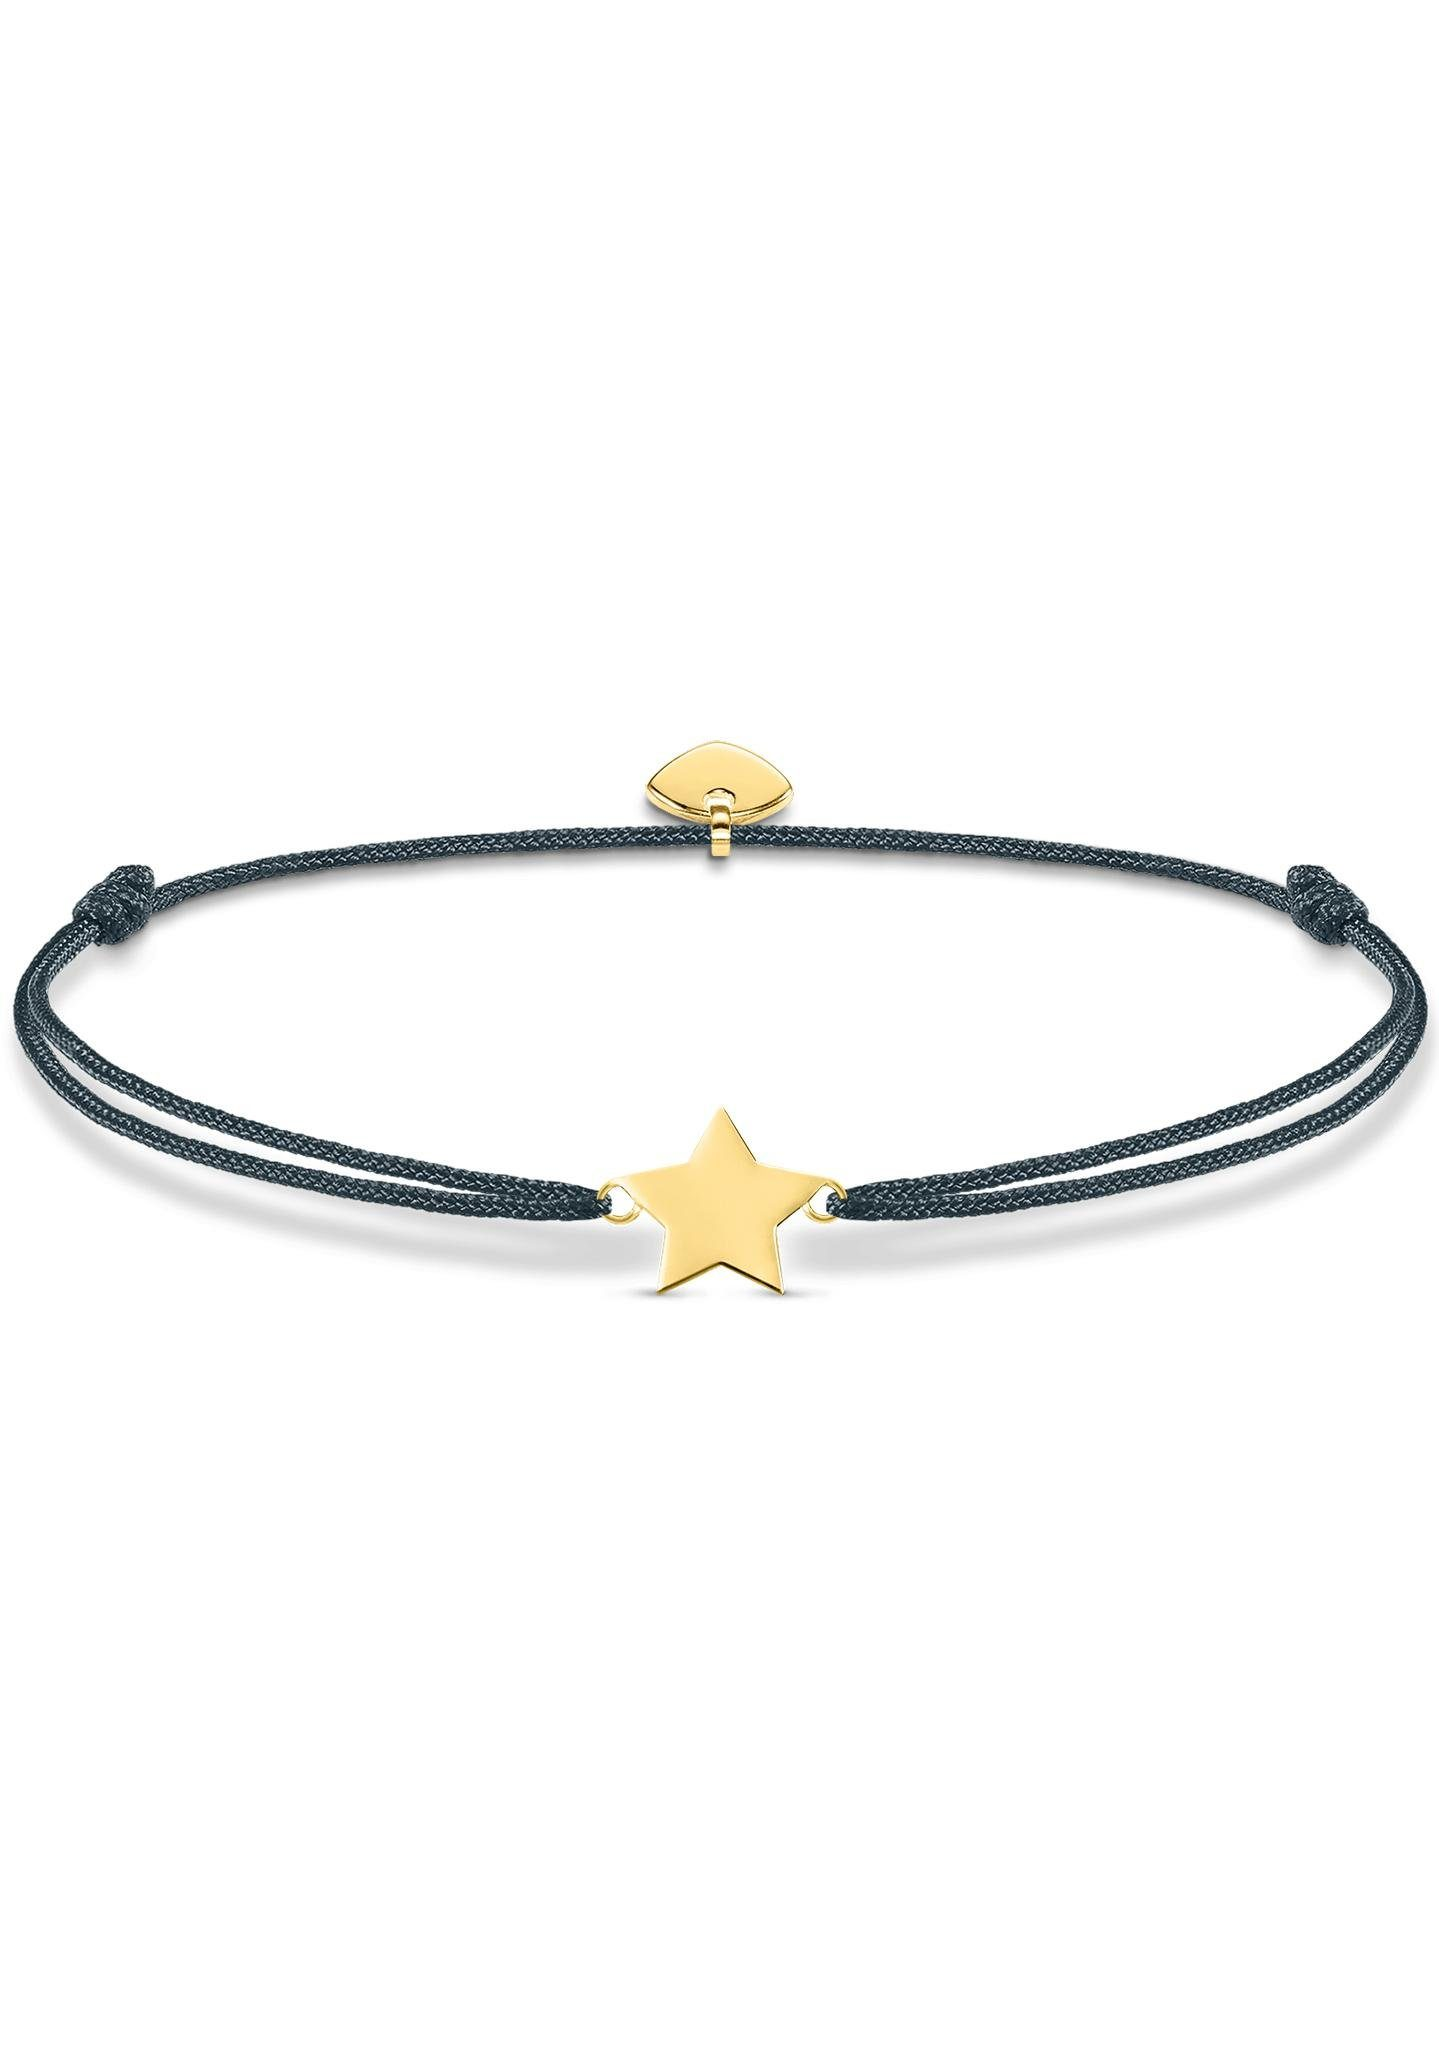 "THOMAS SABO Armband »Little Secret ""Stern"", LS038-848-5-L20v«"